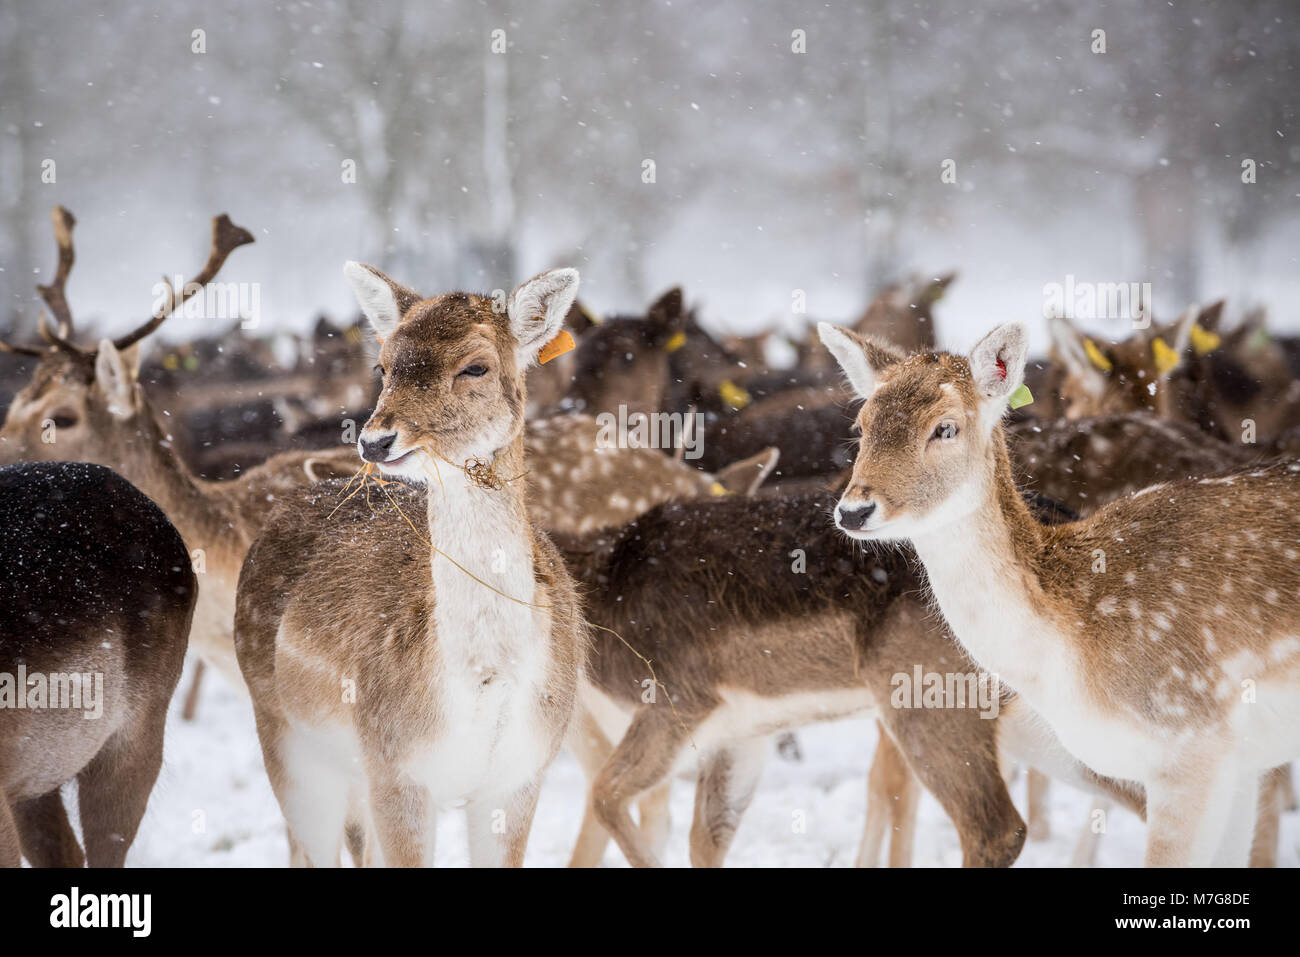 Deers at Phoenix Park in Dublin - Ireland Stock Photo